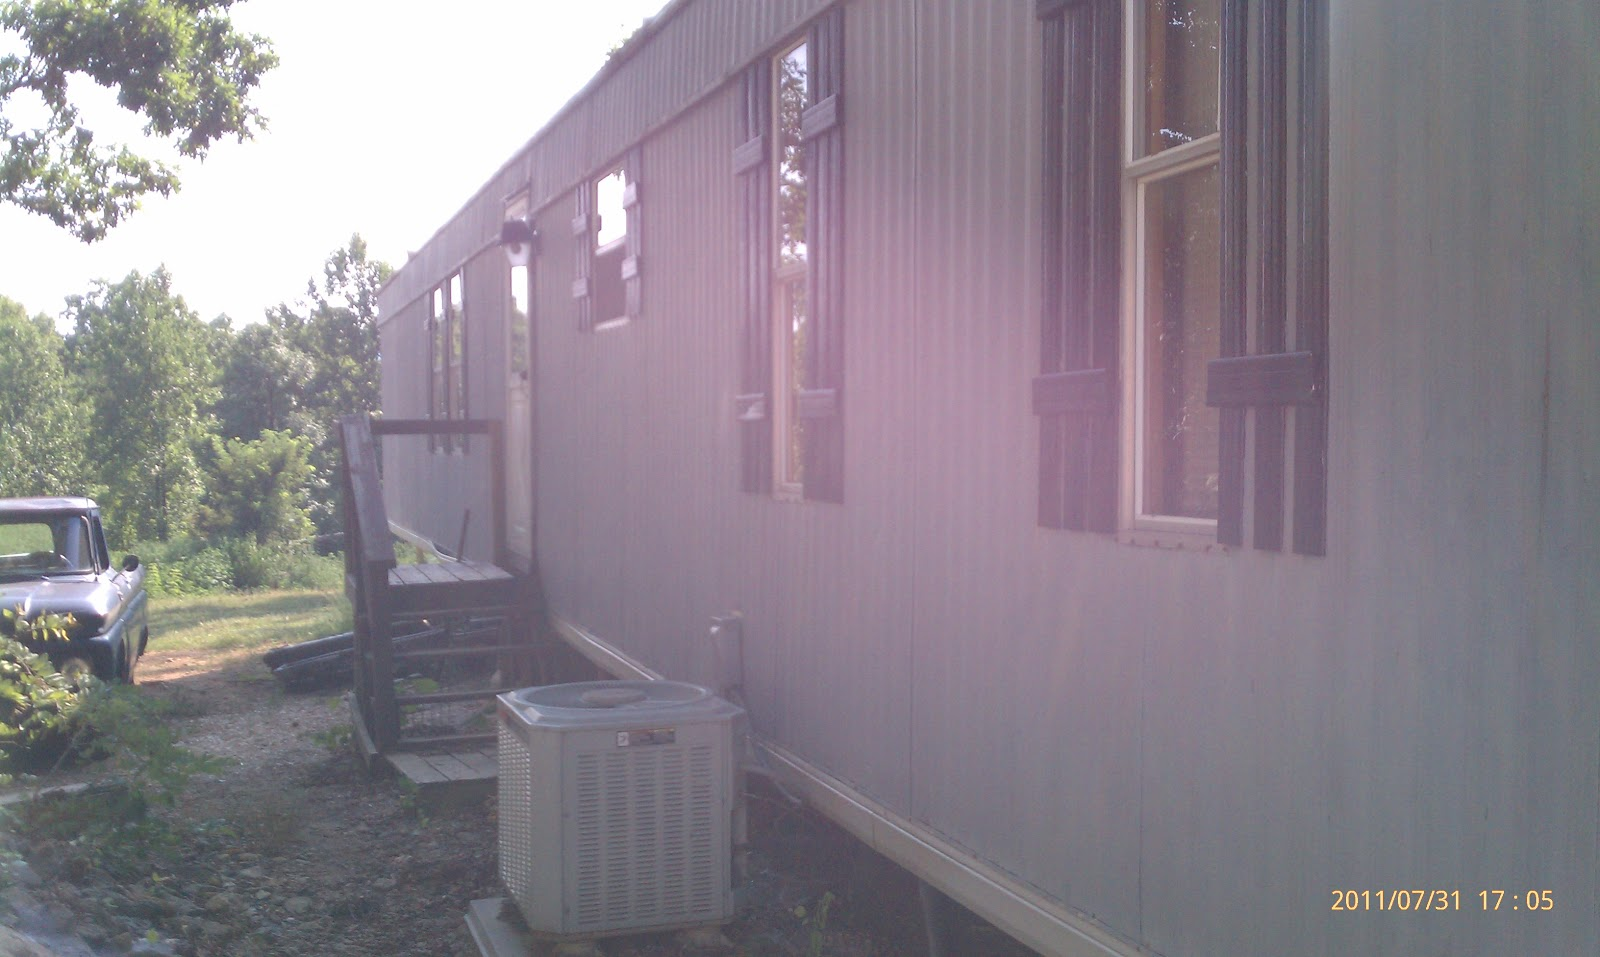 Mobile Home Search Cash Cow Investment 2 Bedroom Mobile Home Blue Ridge Mobile Homes